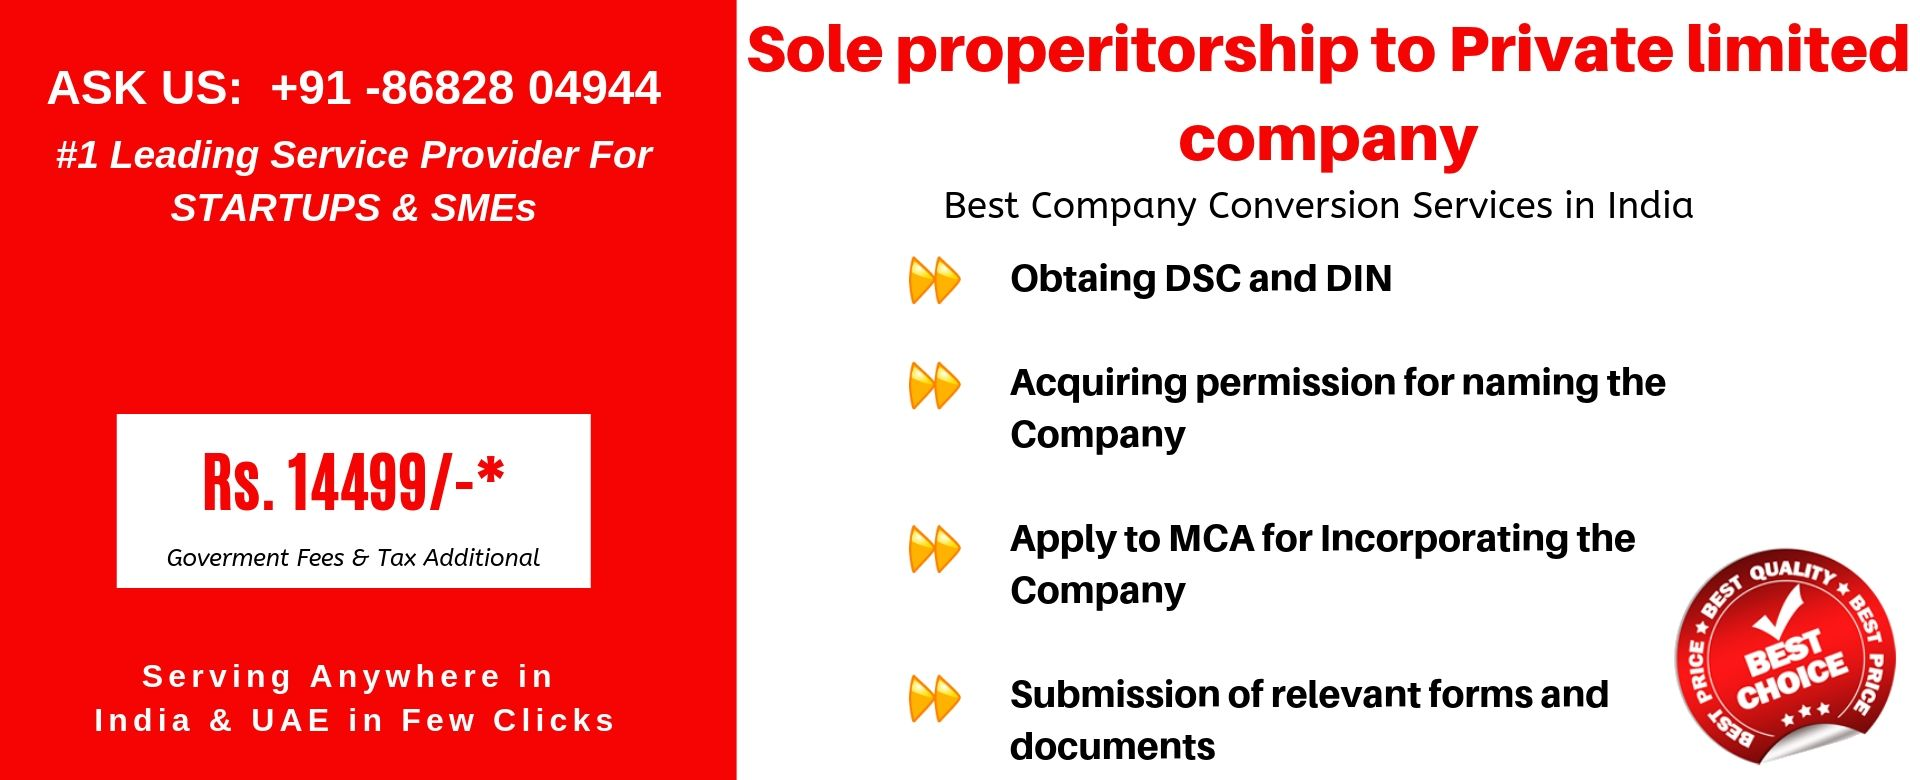 sole properitorship to private limited company in india